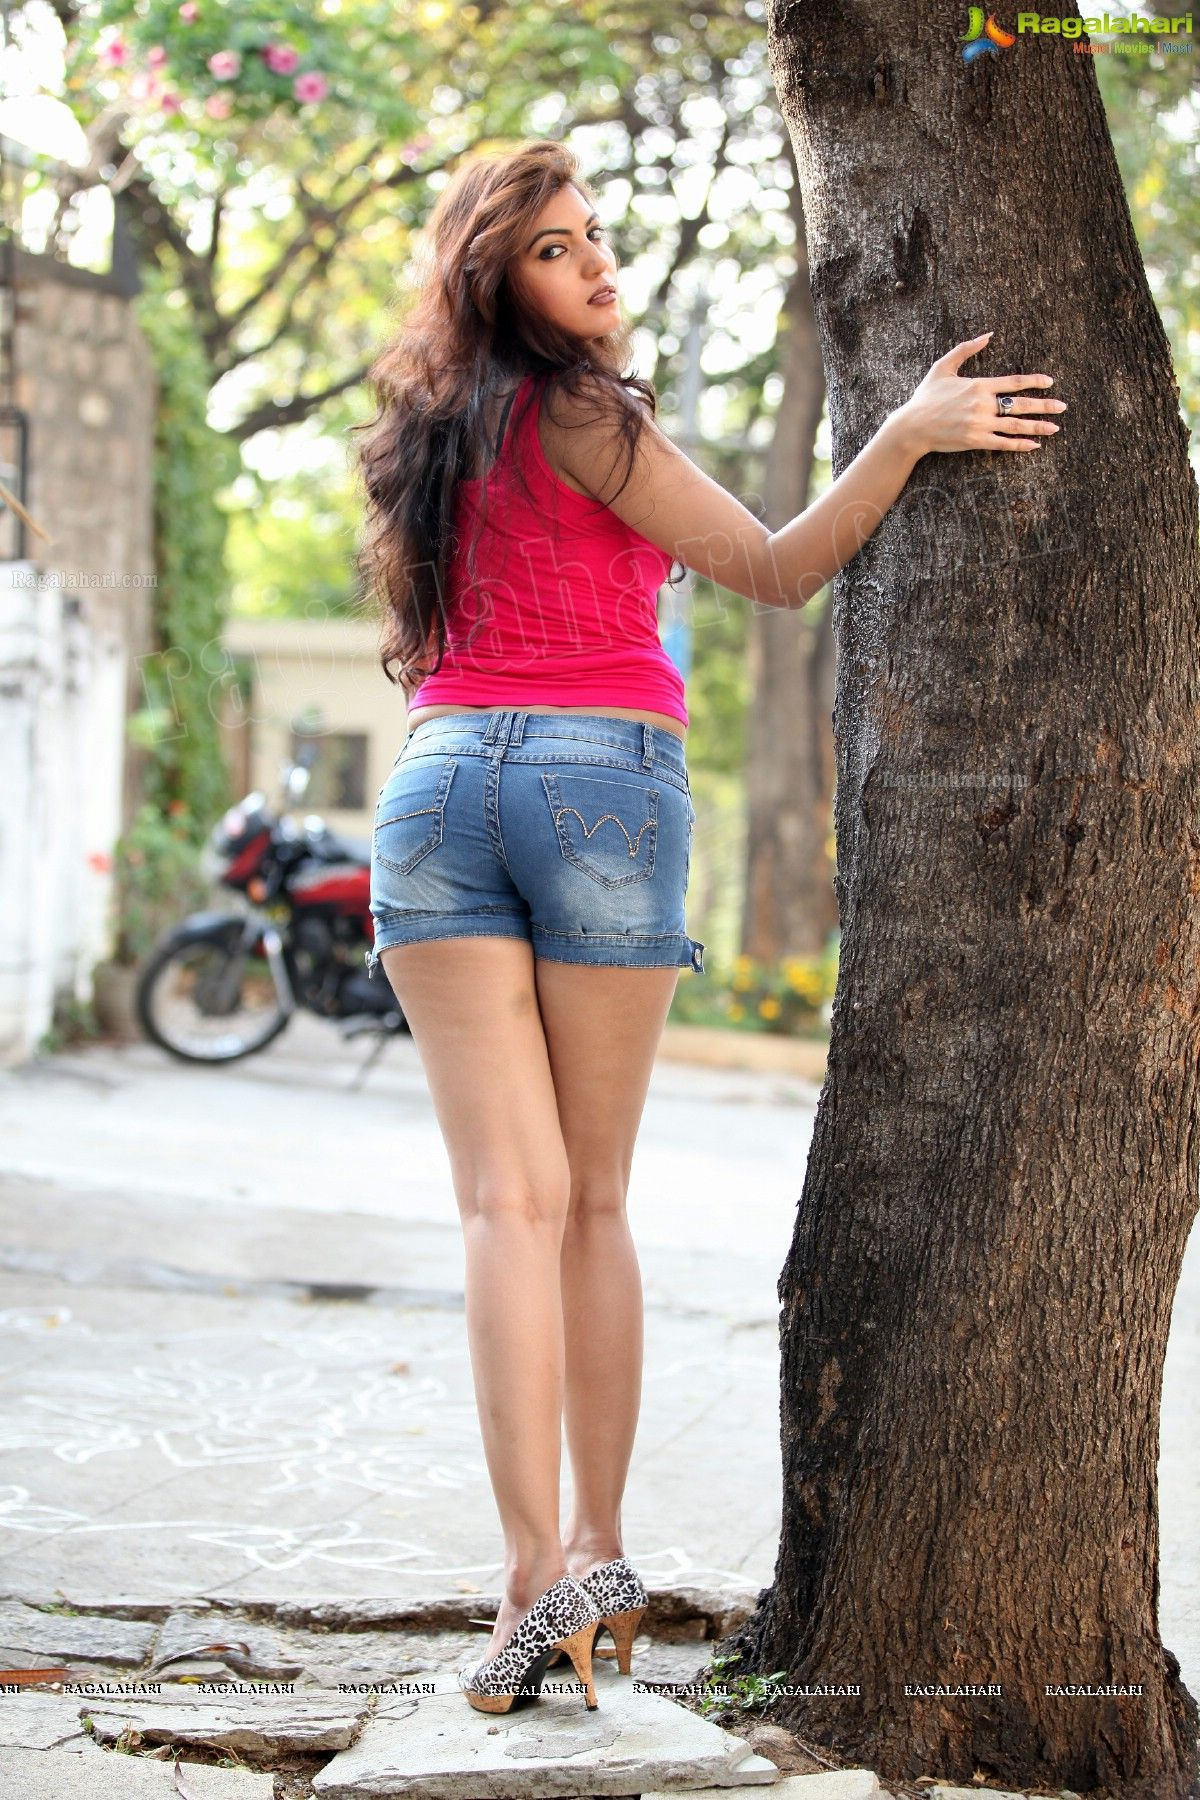 Desi teens jeans ass pics sorry, does